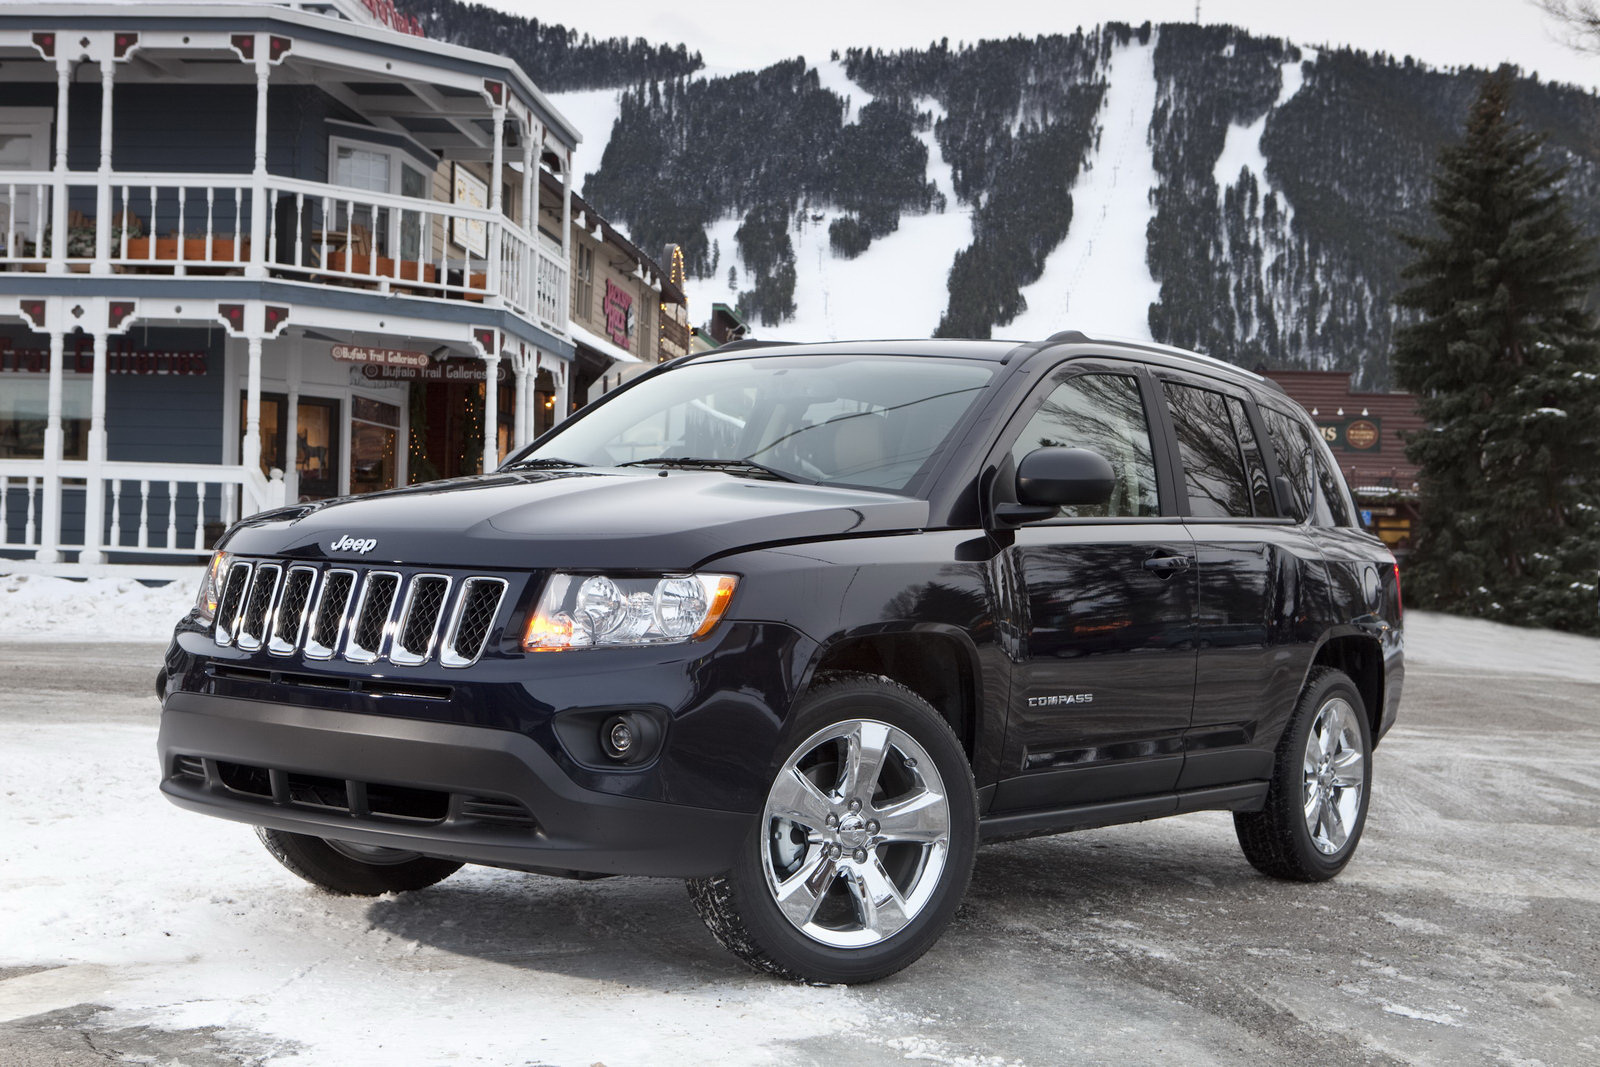 2011 jeep compass starts at 19 295 autoevolution. Black Bedroom Furniture Sets. Home Design Ideas